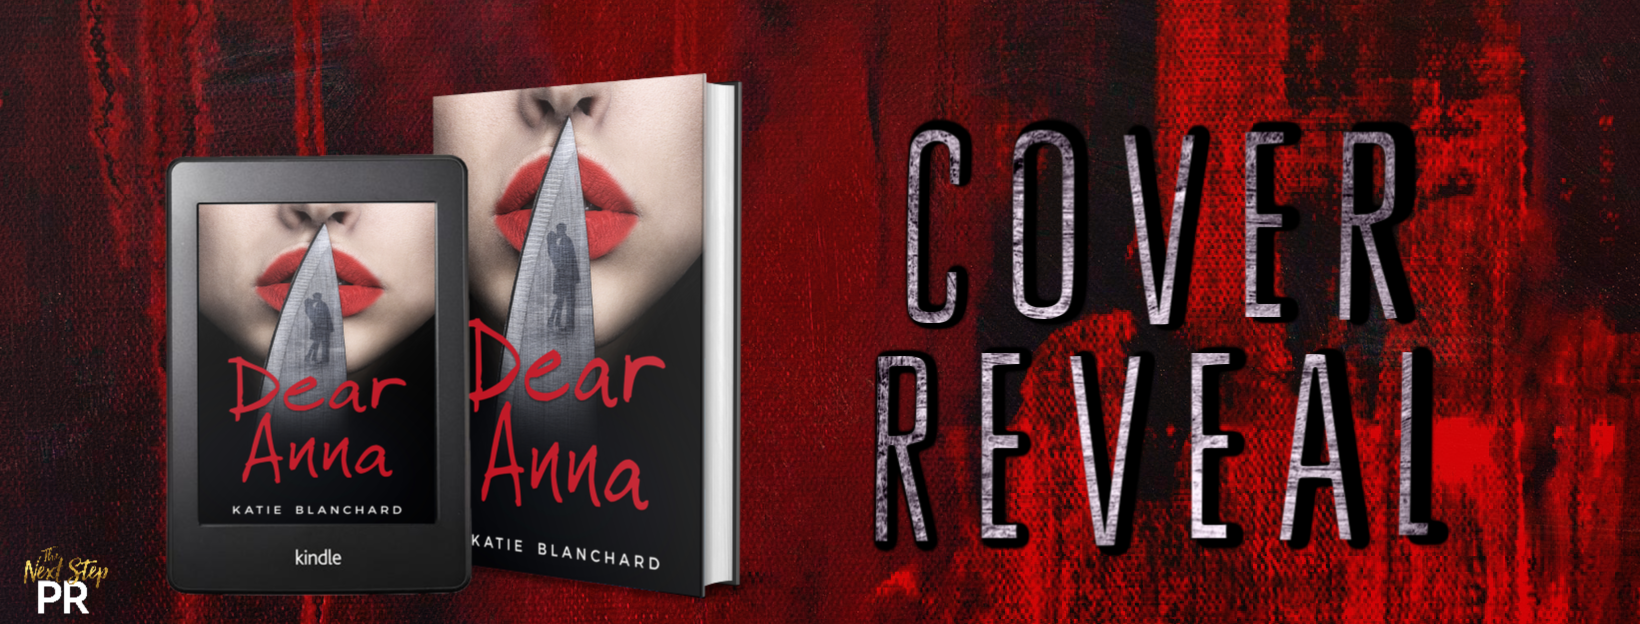 Cover Reveal Banner_ Dear Anna